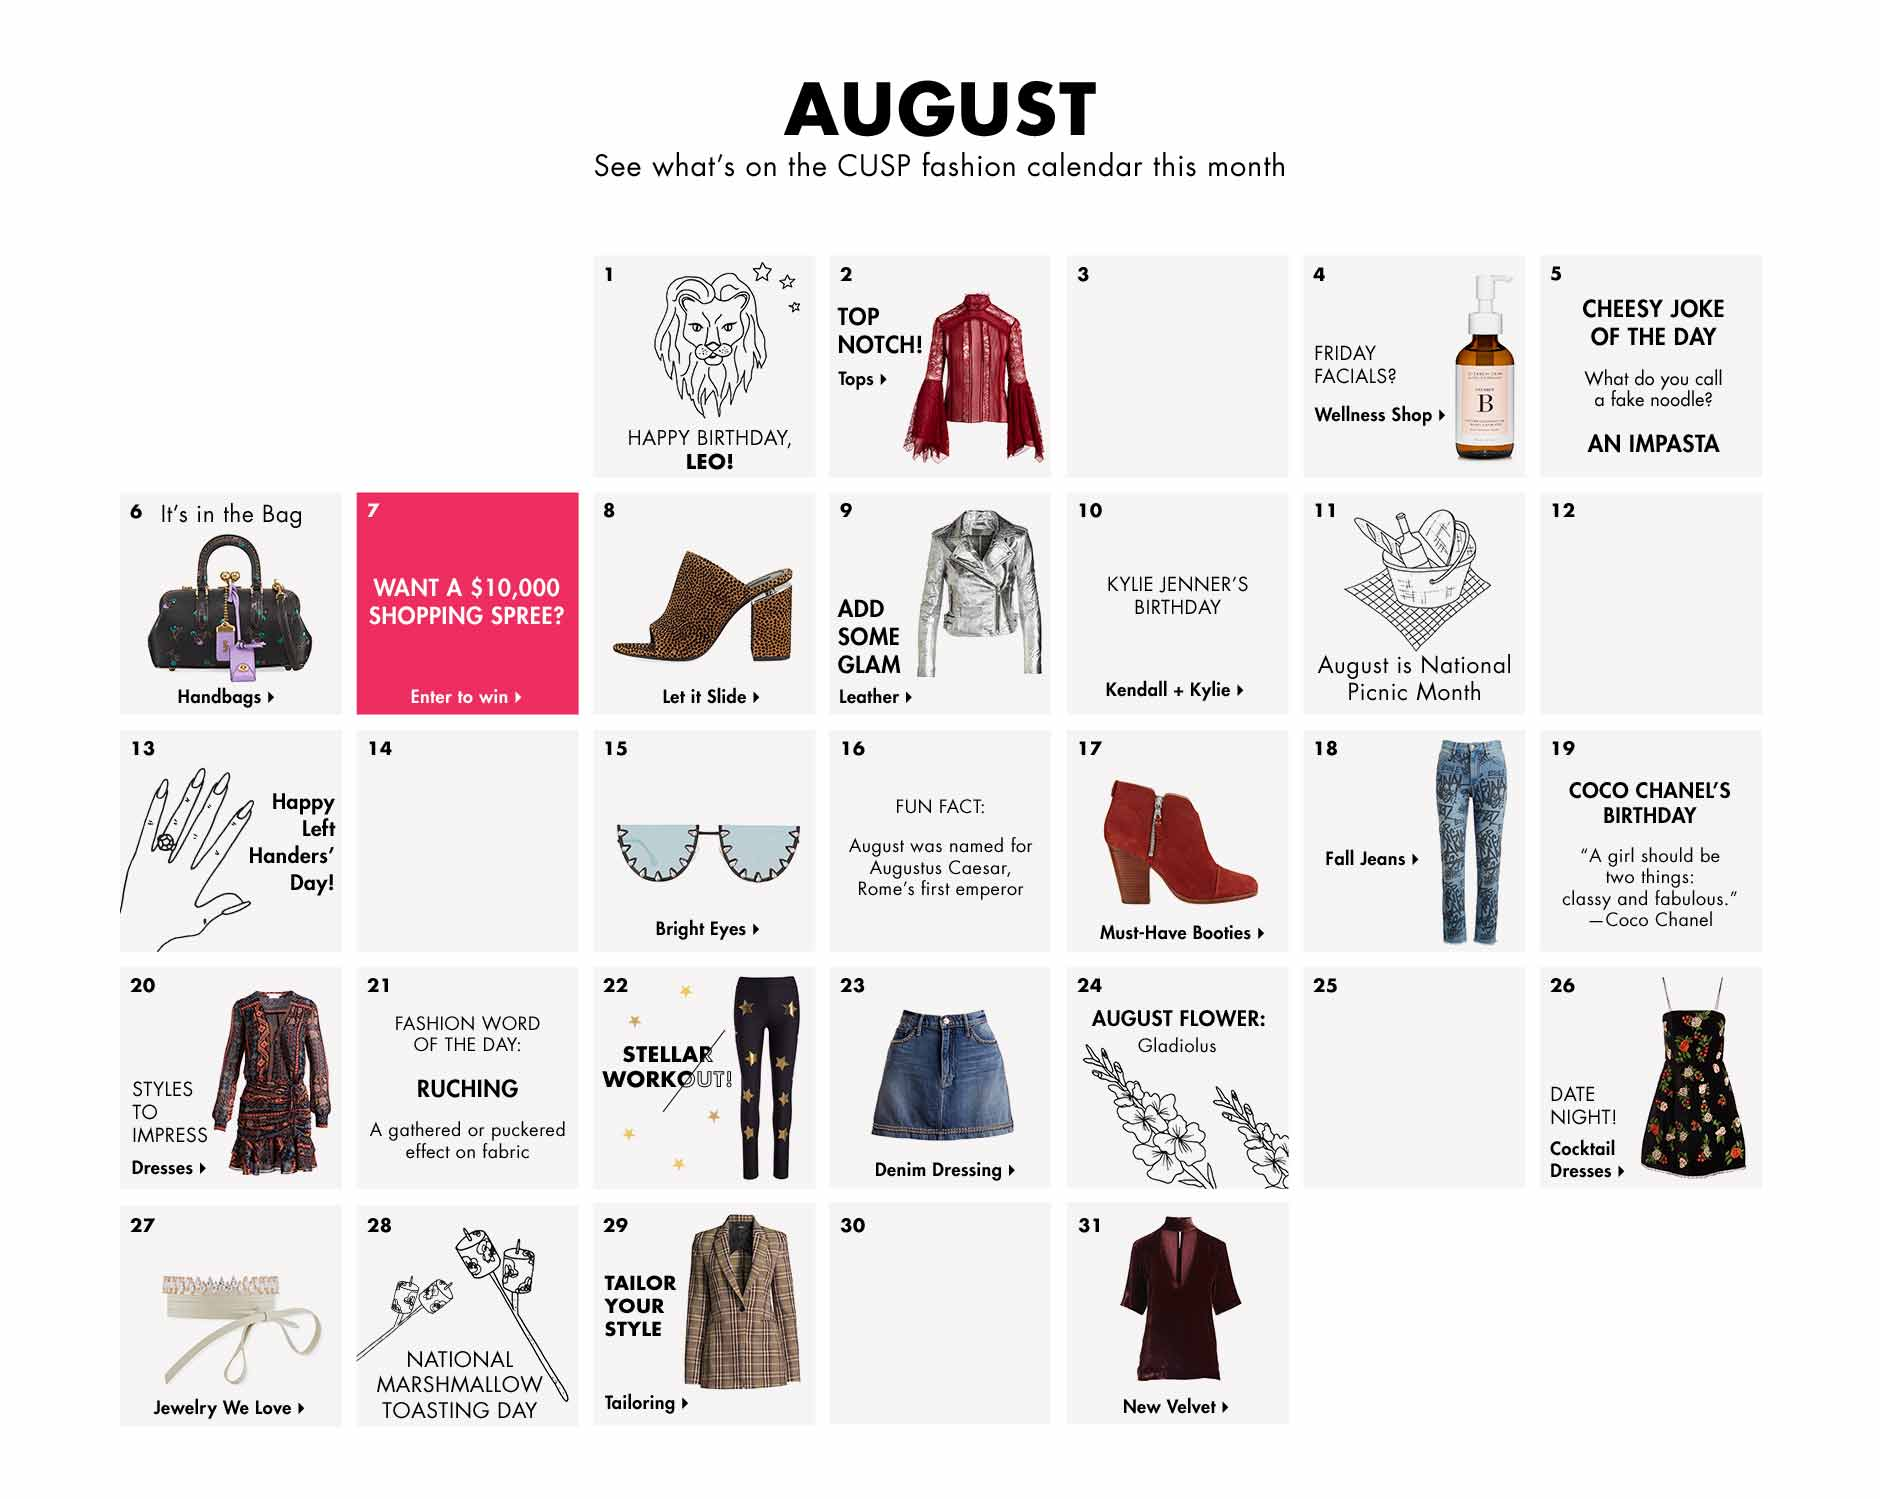 August - See what's on the CUSP fashion calendar this month